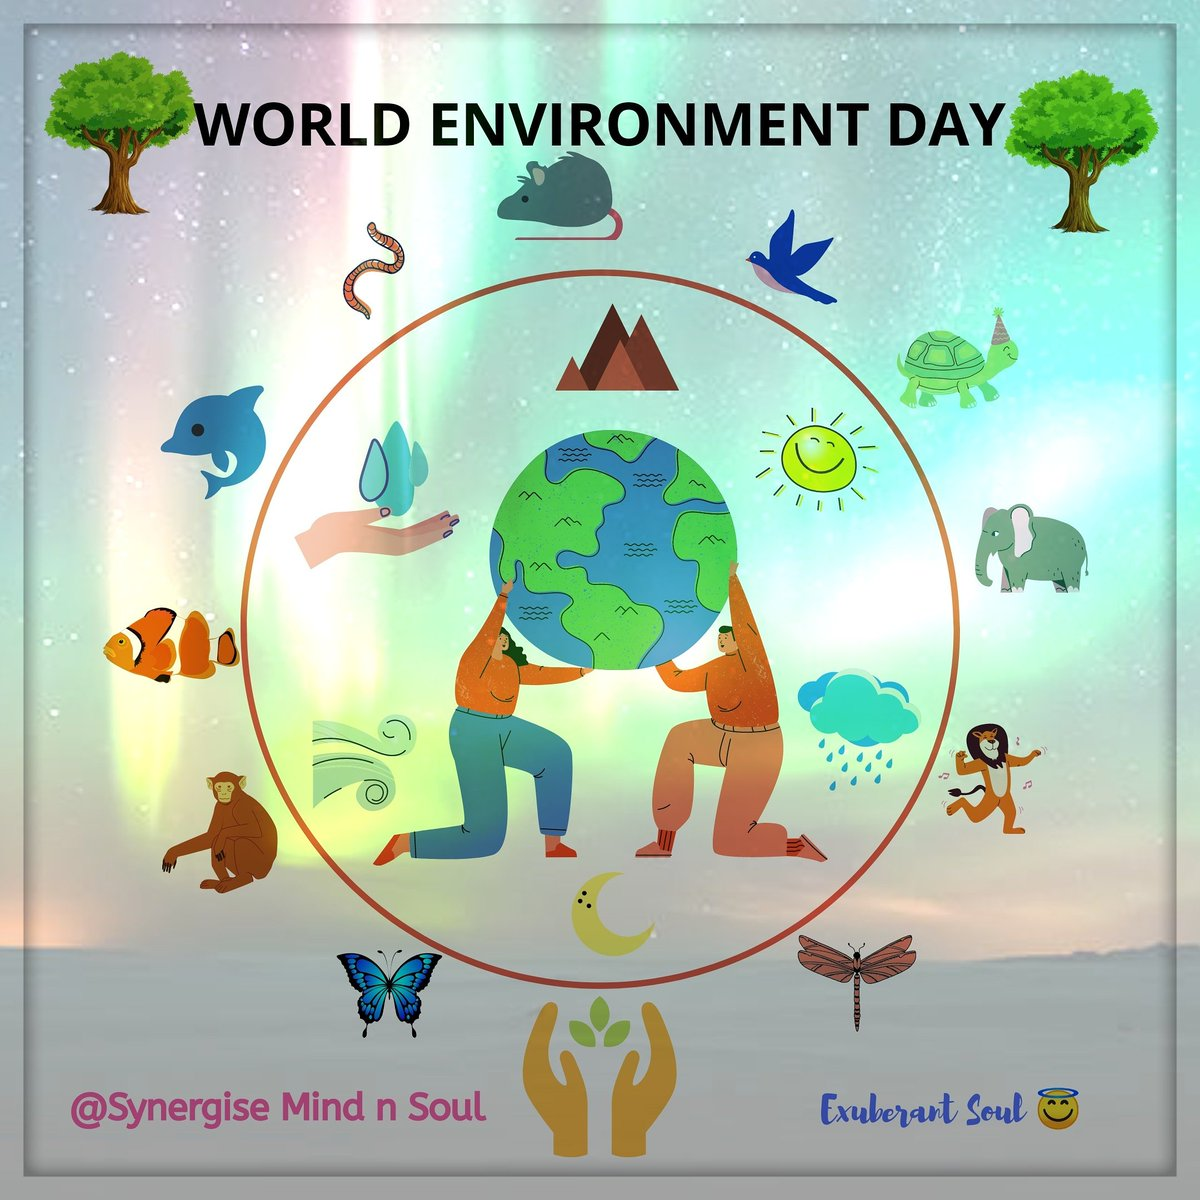 """Environment - वातावरण   This is our home... We are equally responsible for taking care of mother nature... """"Ye hai to hum hai""""  Gratitude 🙏 #EnvironmentDay #EnvironmentDay2020 #environment #biodiversity #loveforlife #PositiveVibes #PositiveEnergy #PositiveVibesOnly #naturelover https://t.co/ElIPF0Fubk"""